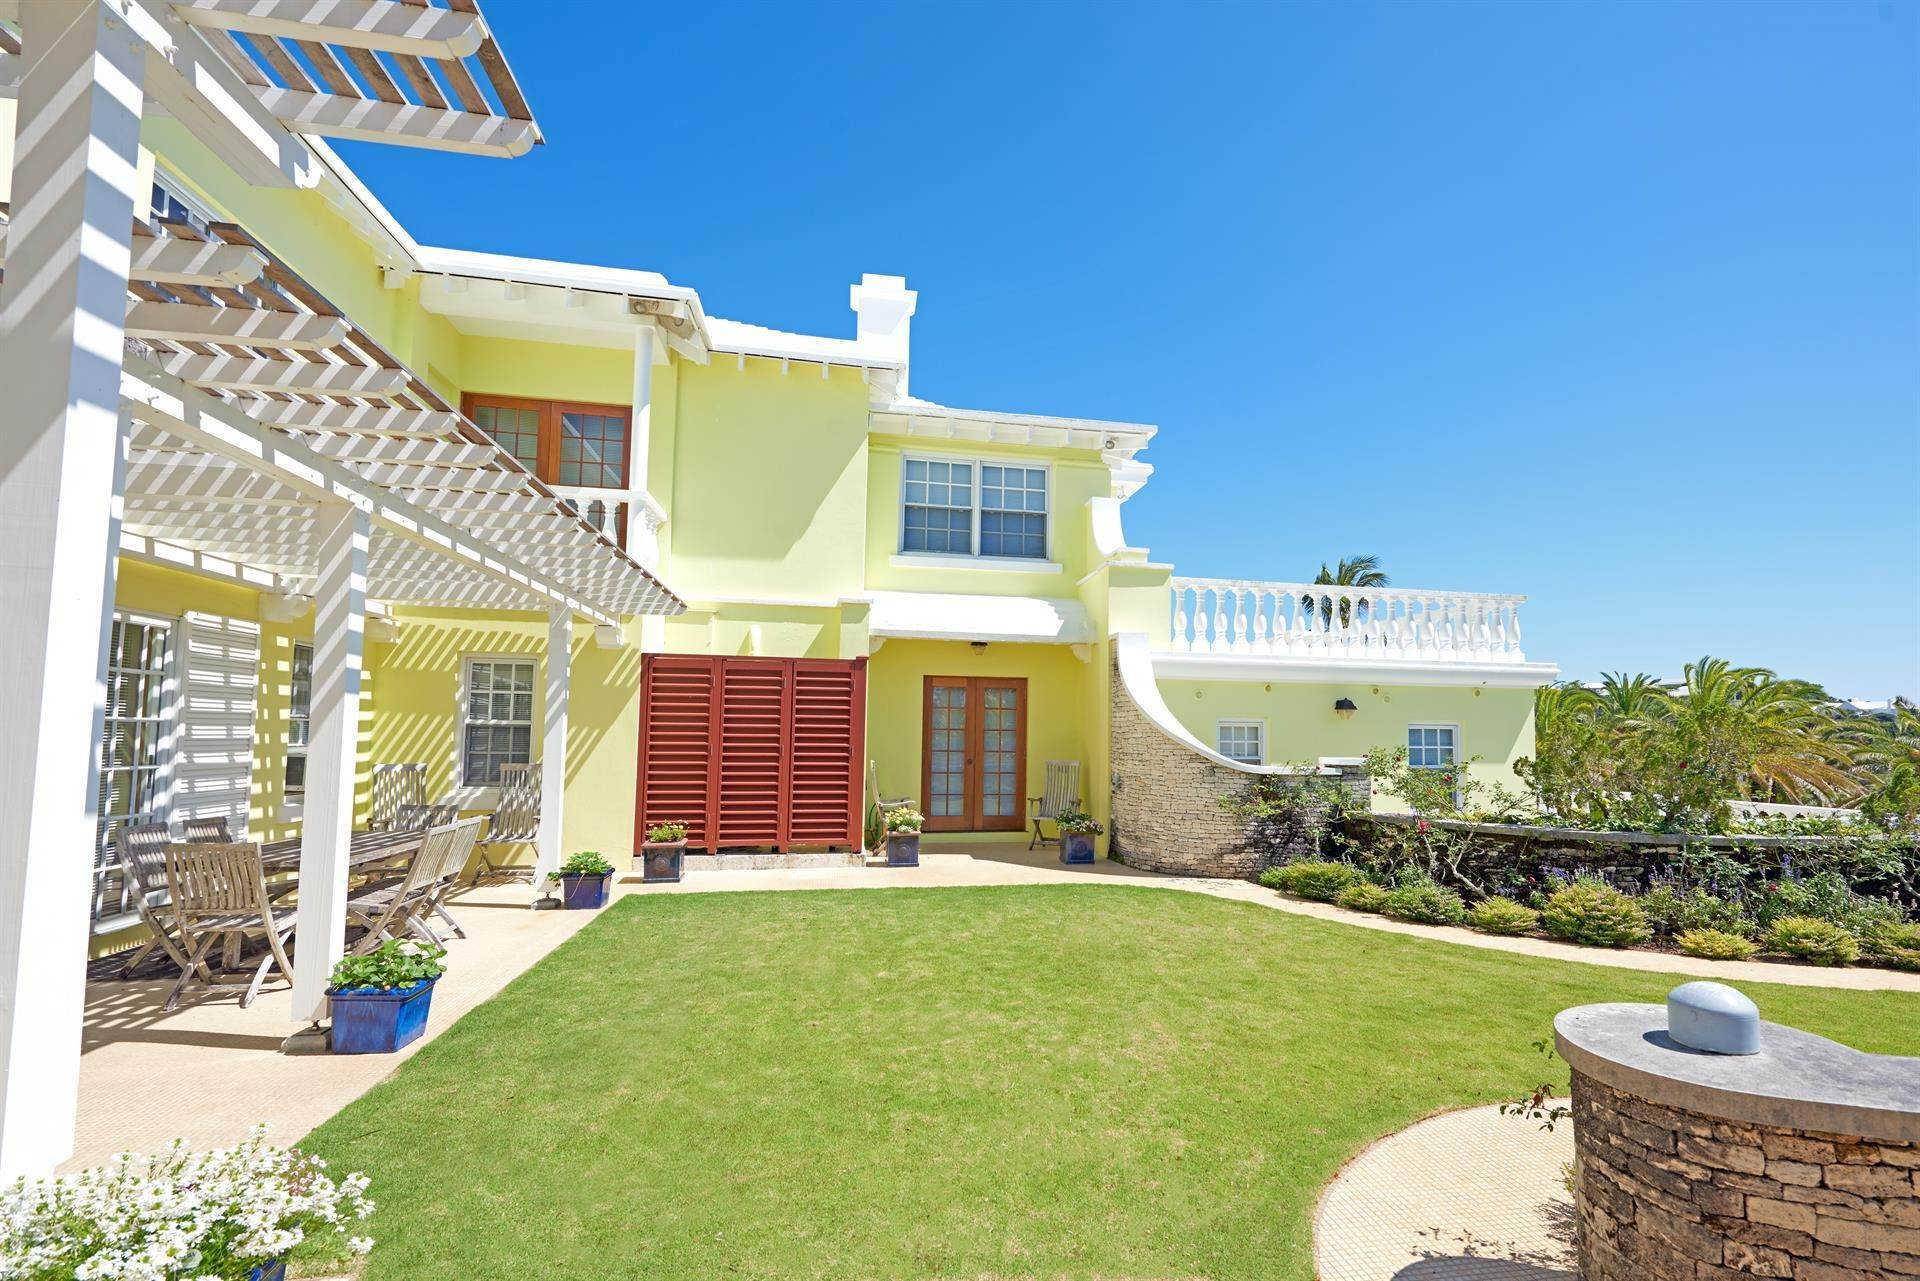 7. Waterfront Property for Sale at Palomera In Fairylands Palomera In Fairylands, 7 Mills Shares Road,Bermuda – Sinclair Realty